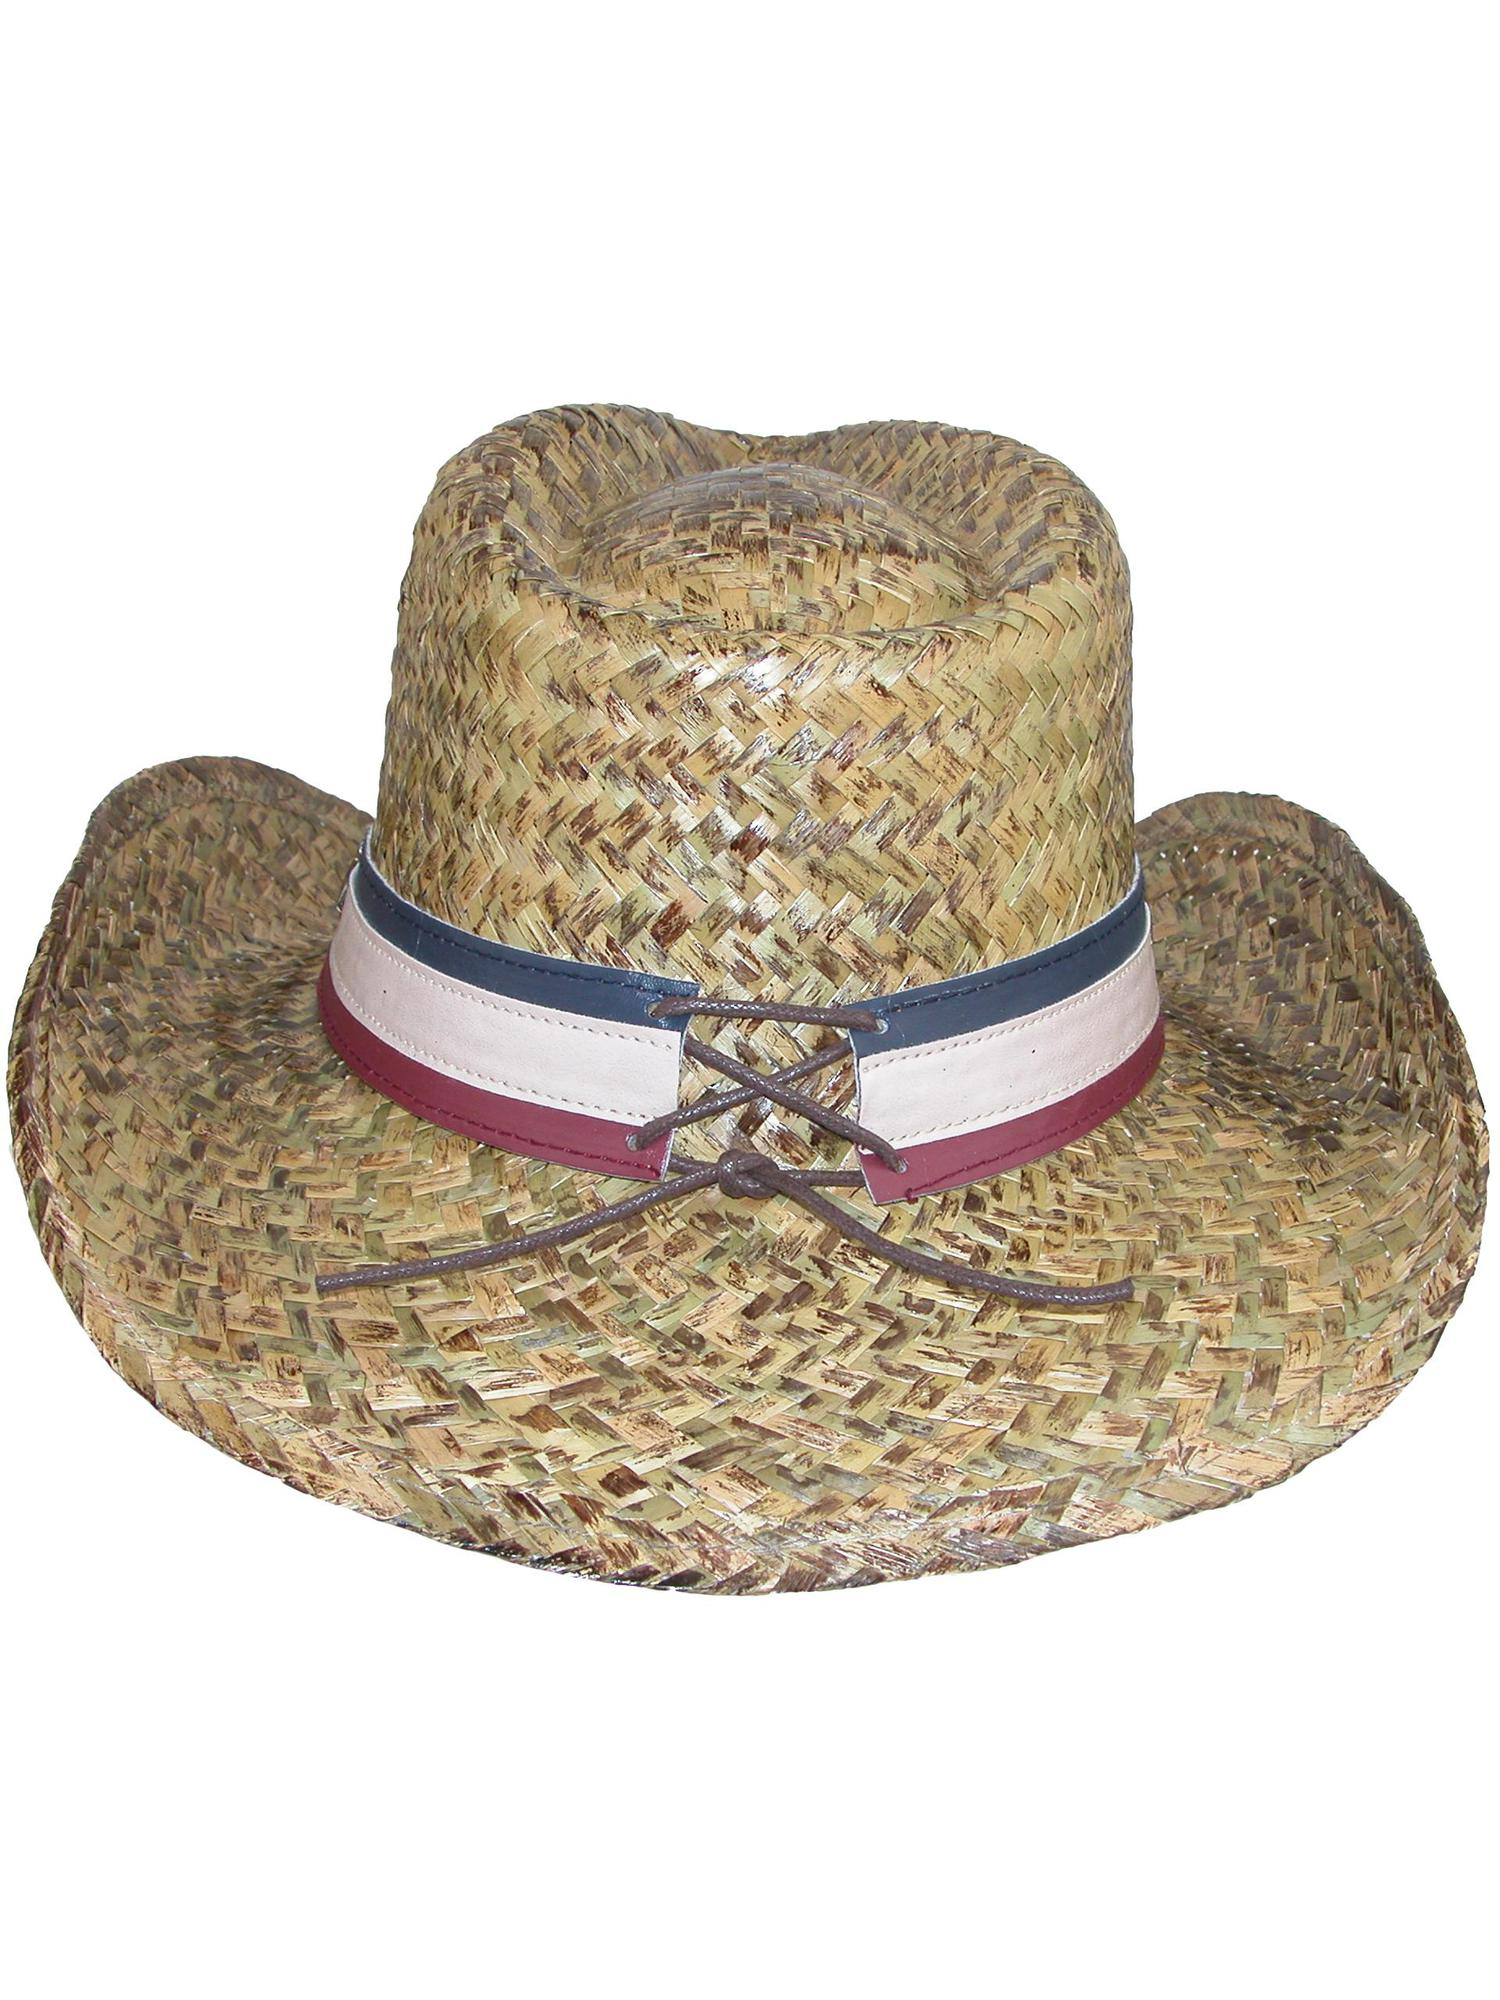 5ef82b9ac386f DPC Outdoor Design - Men s Outback Hat with Shapeable Brim and Star Hatband